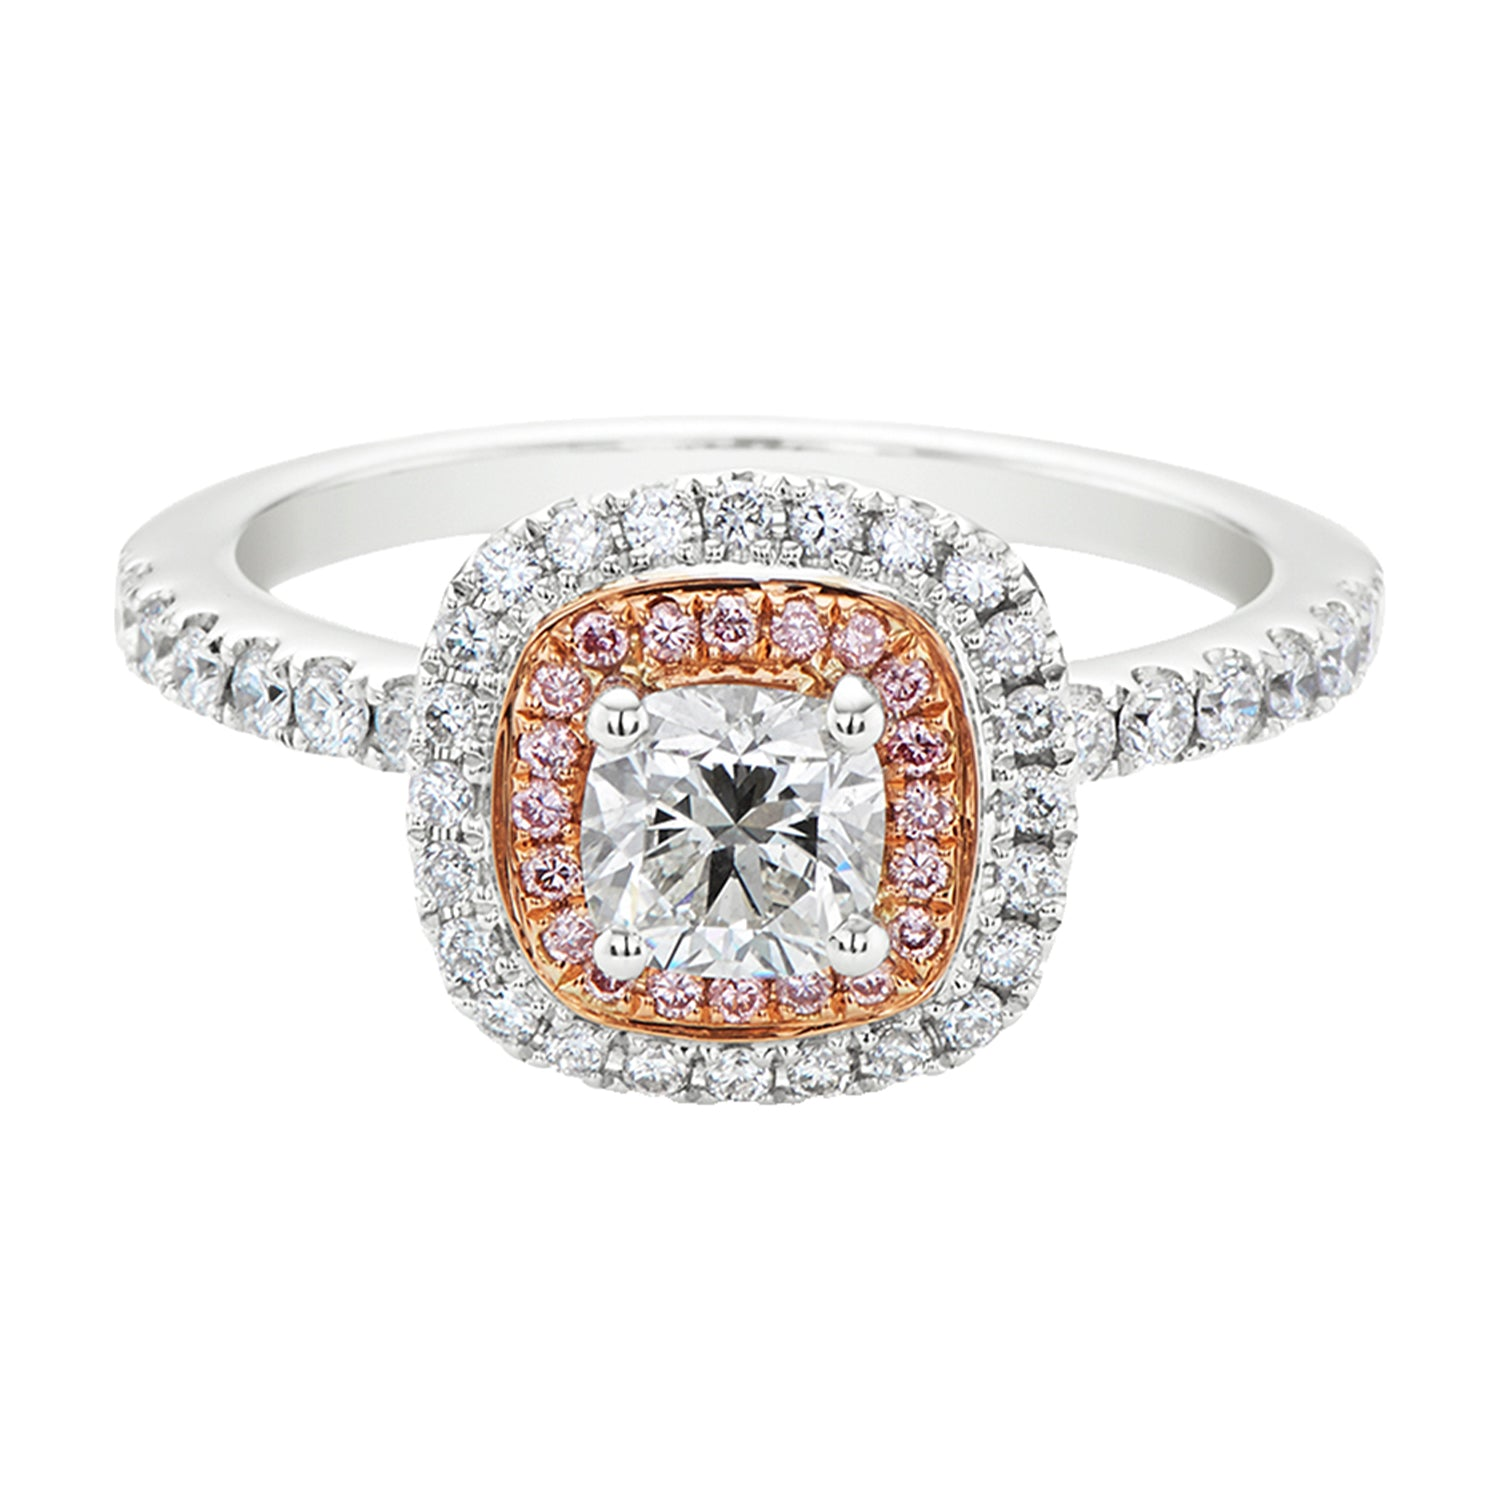 Rand 18ct Rose & White Gold Princess & Round Brilliant Cut with 1.05 CARAT tw of Diamonds